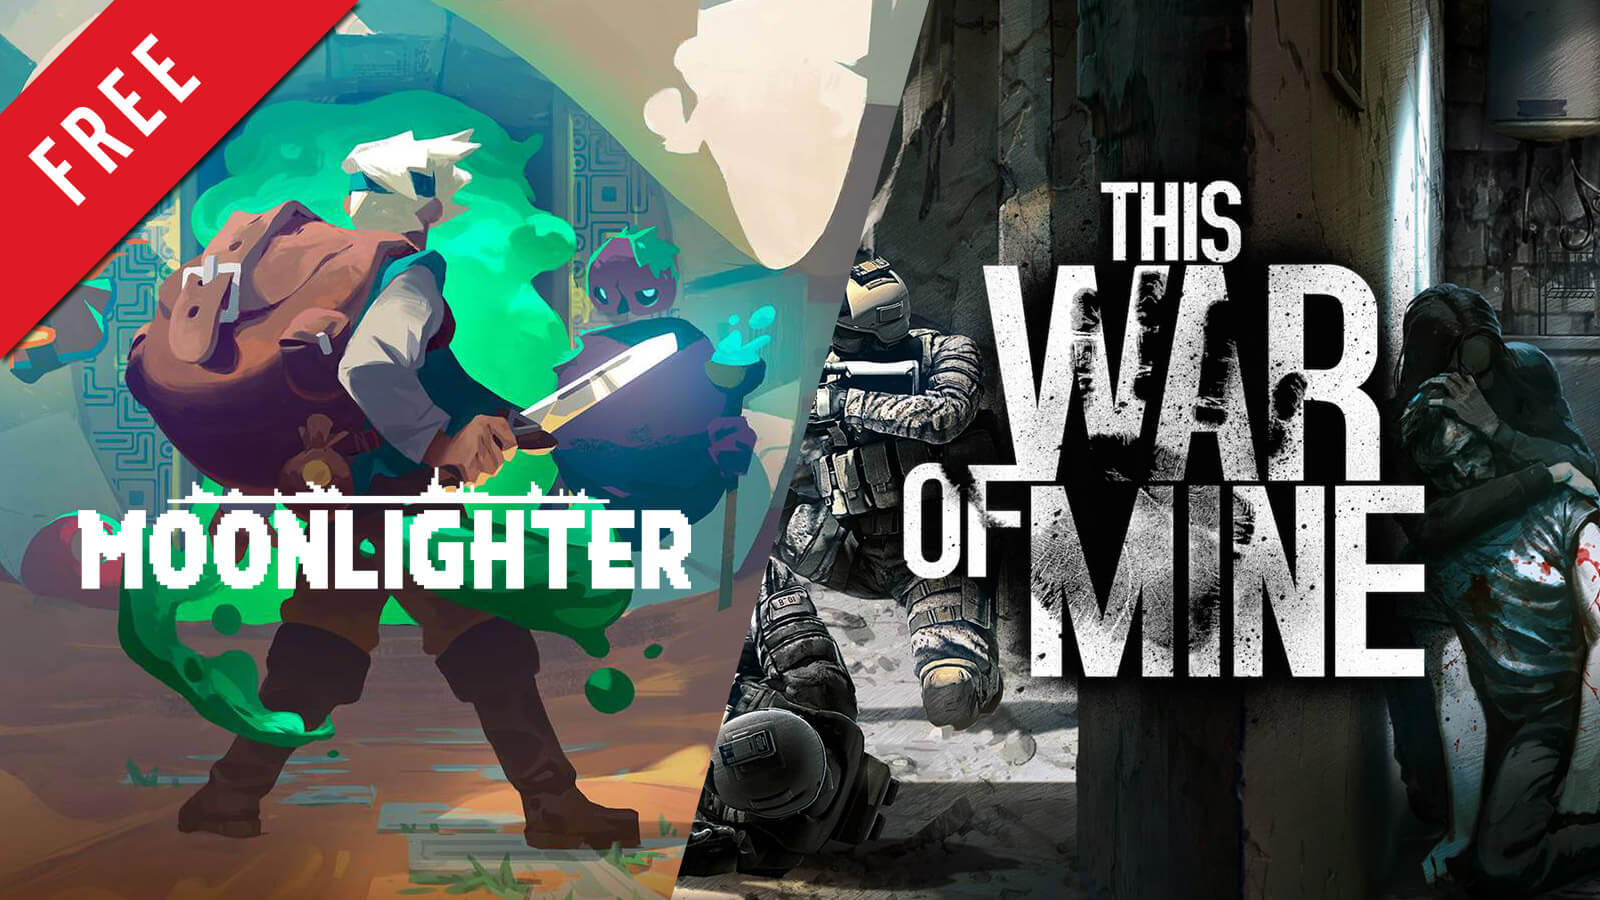 Moonlighter and This War of Mine Free on Epic Games Store Now